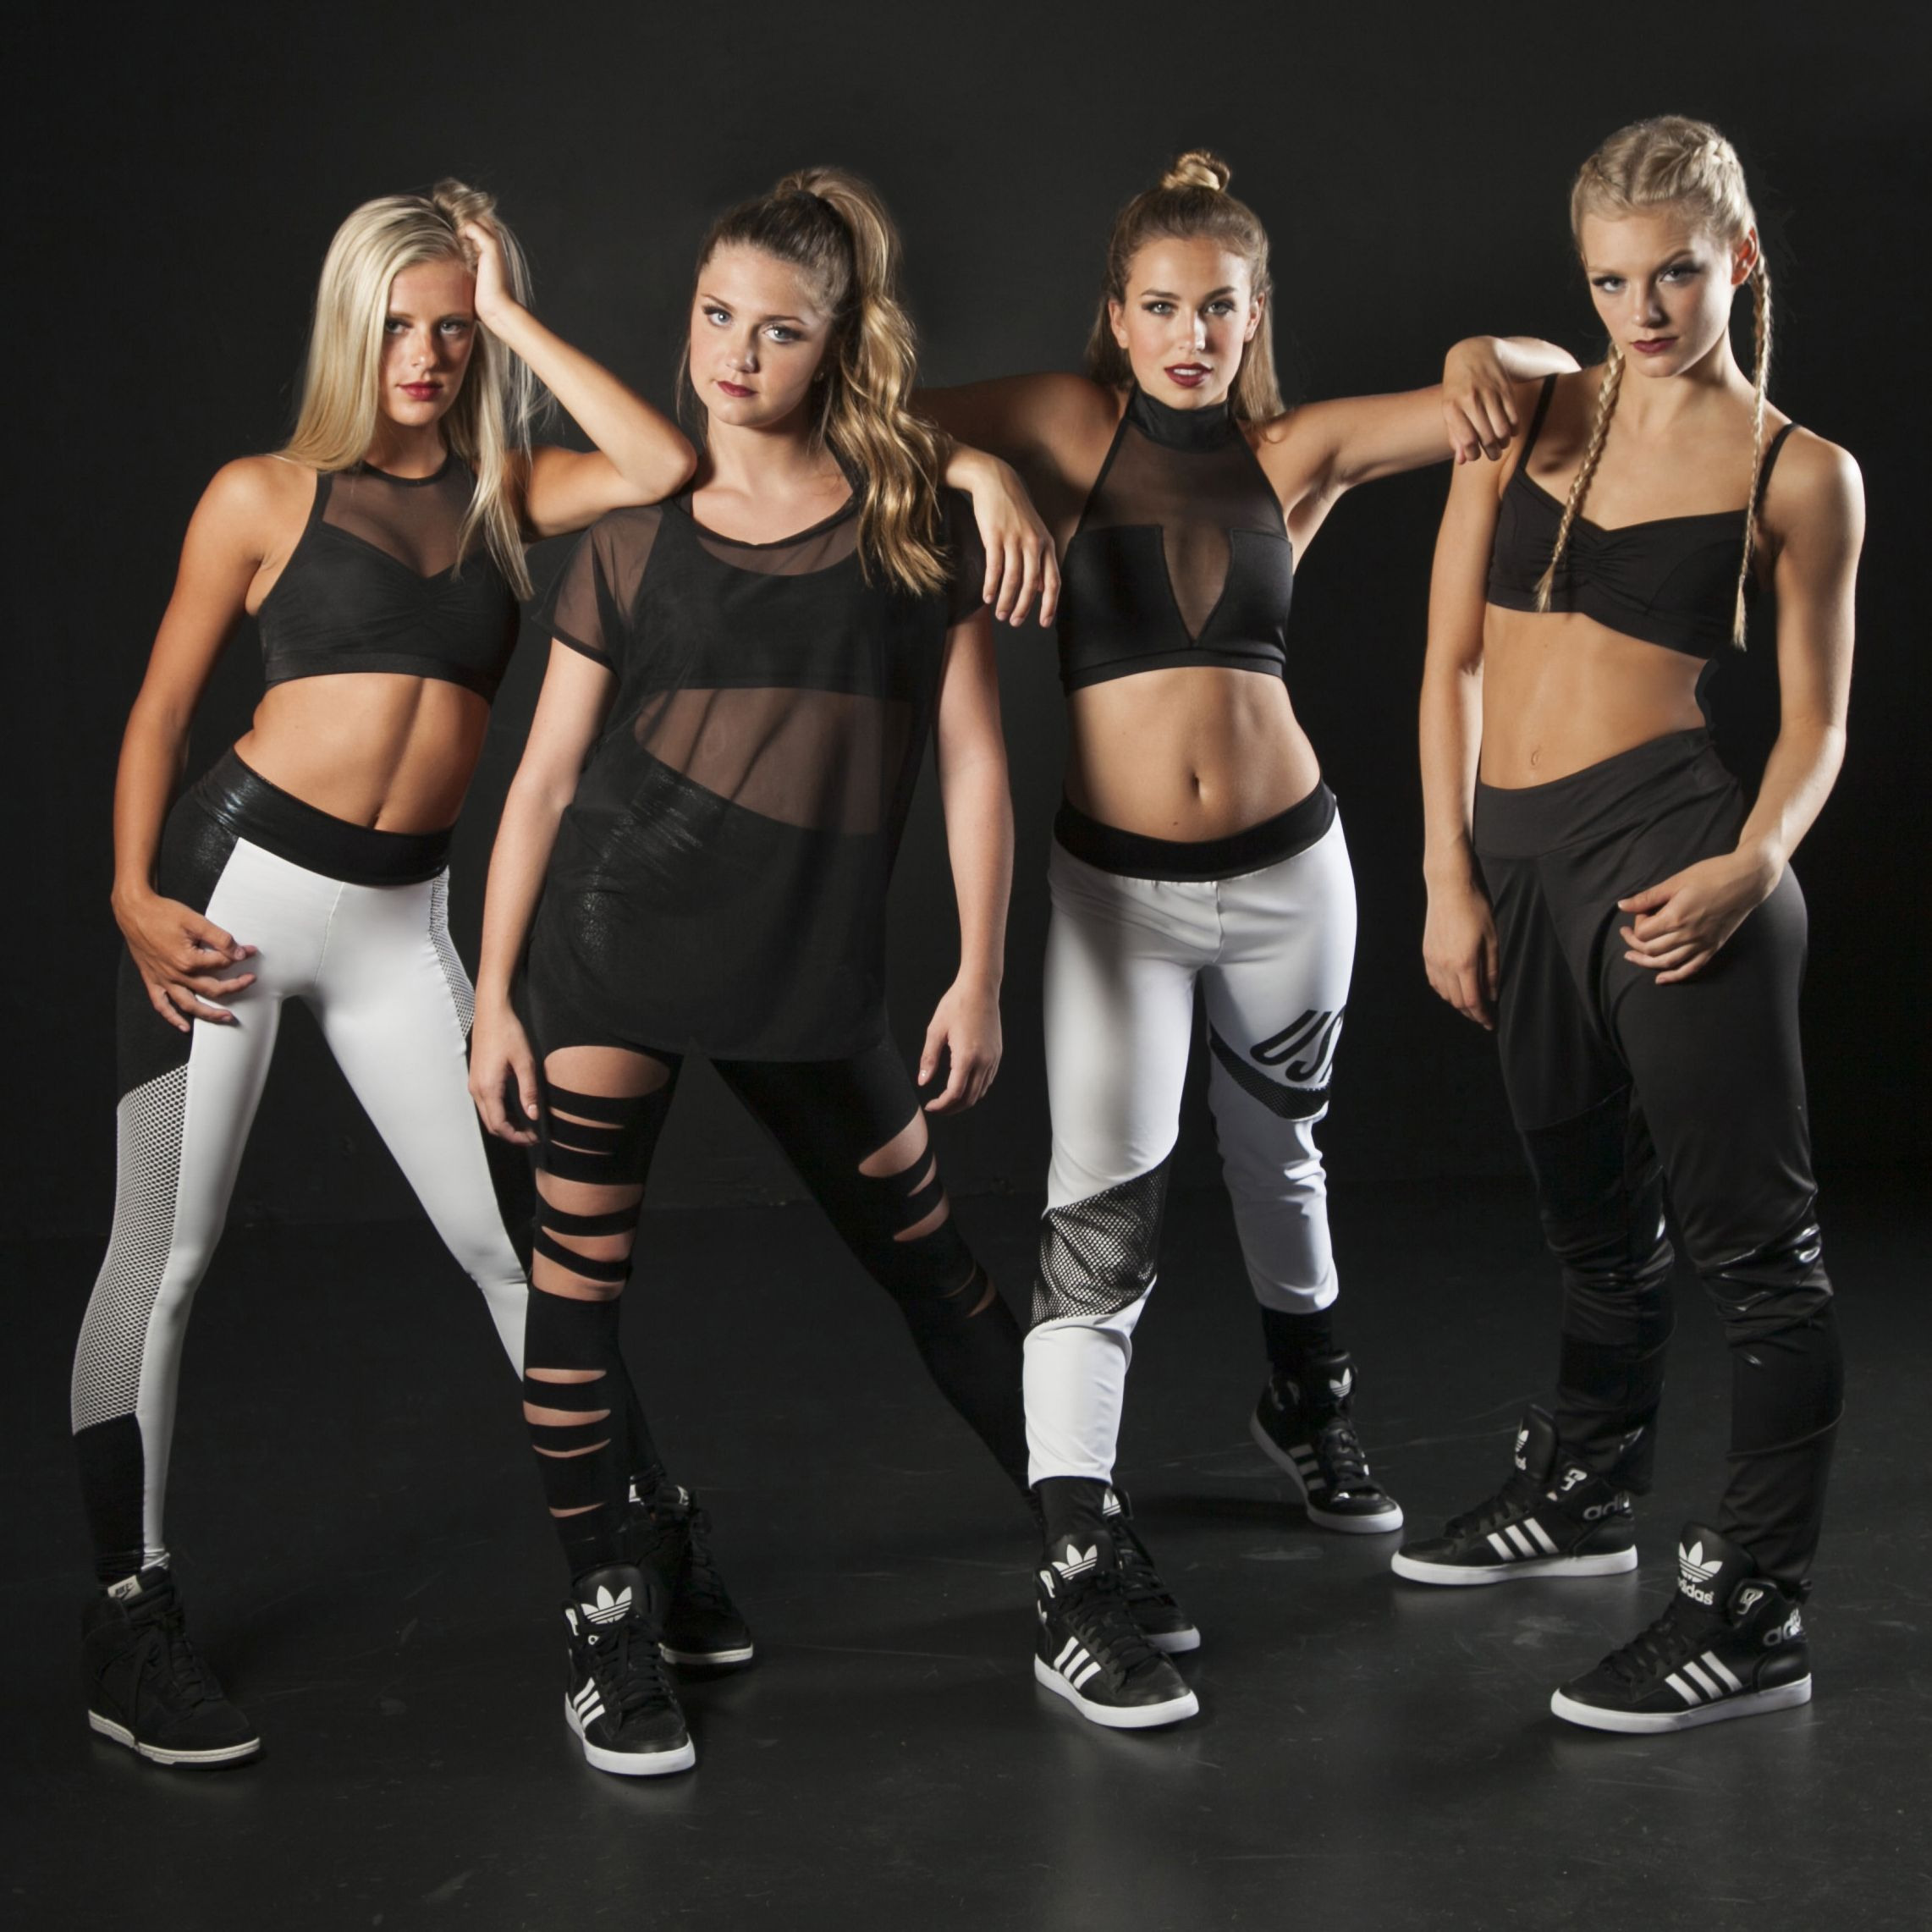 Top 9 Hip Hop Dance Costume Trends - Check out the full list on The Line